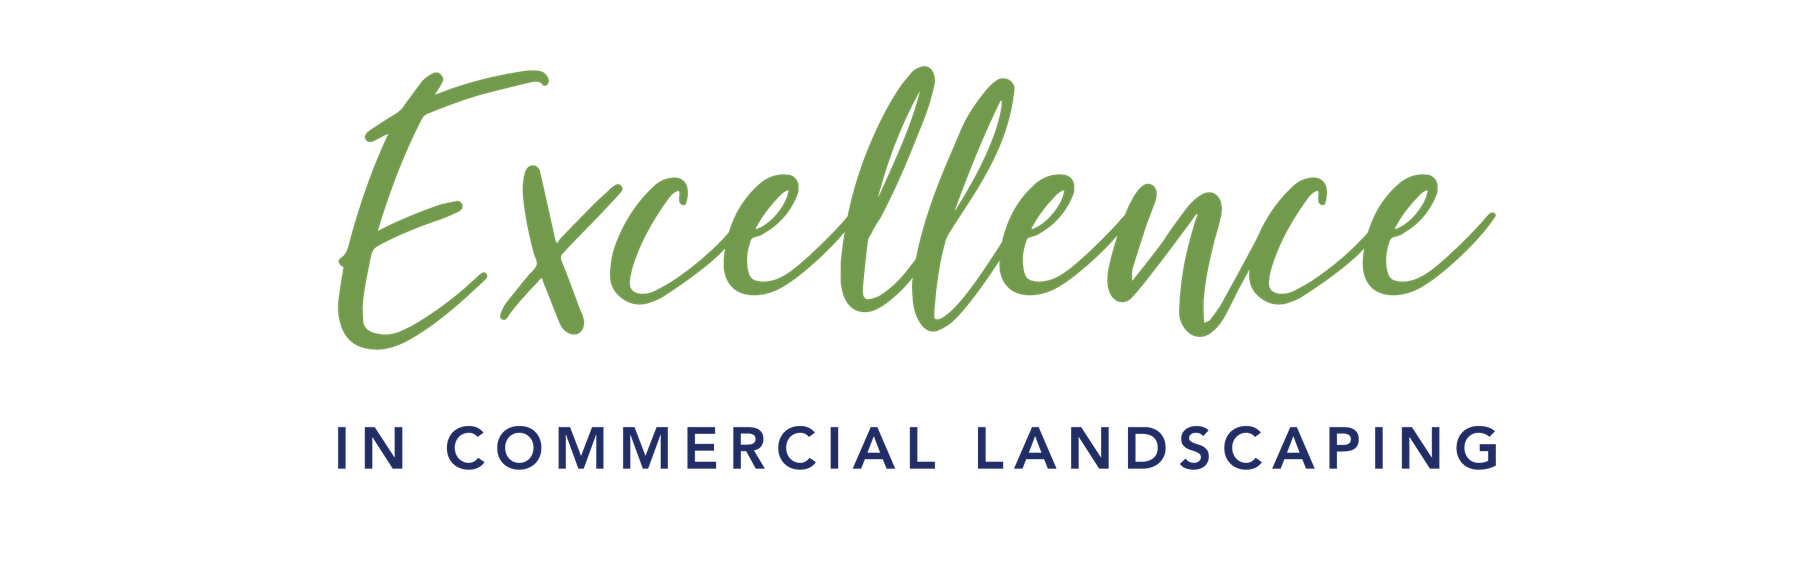 excellence in commercial landscaping